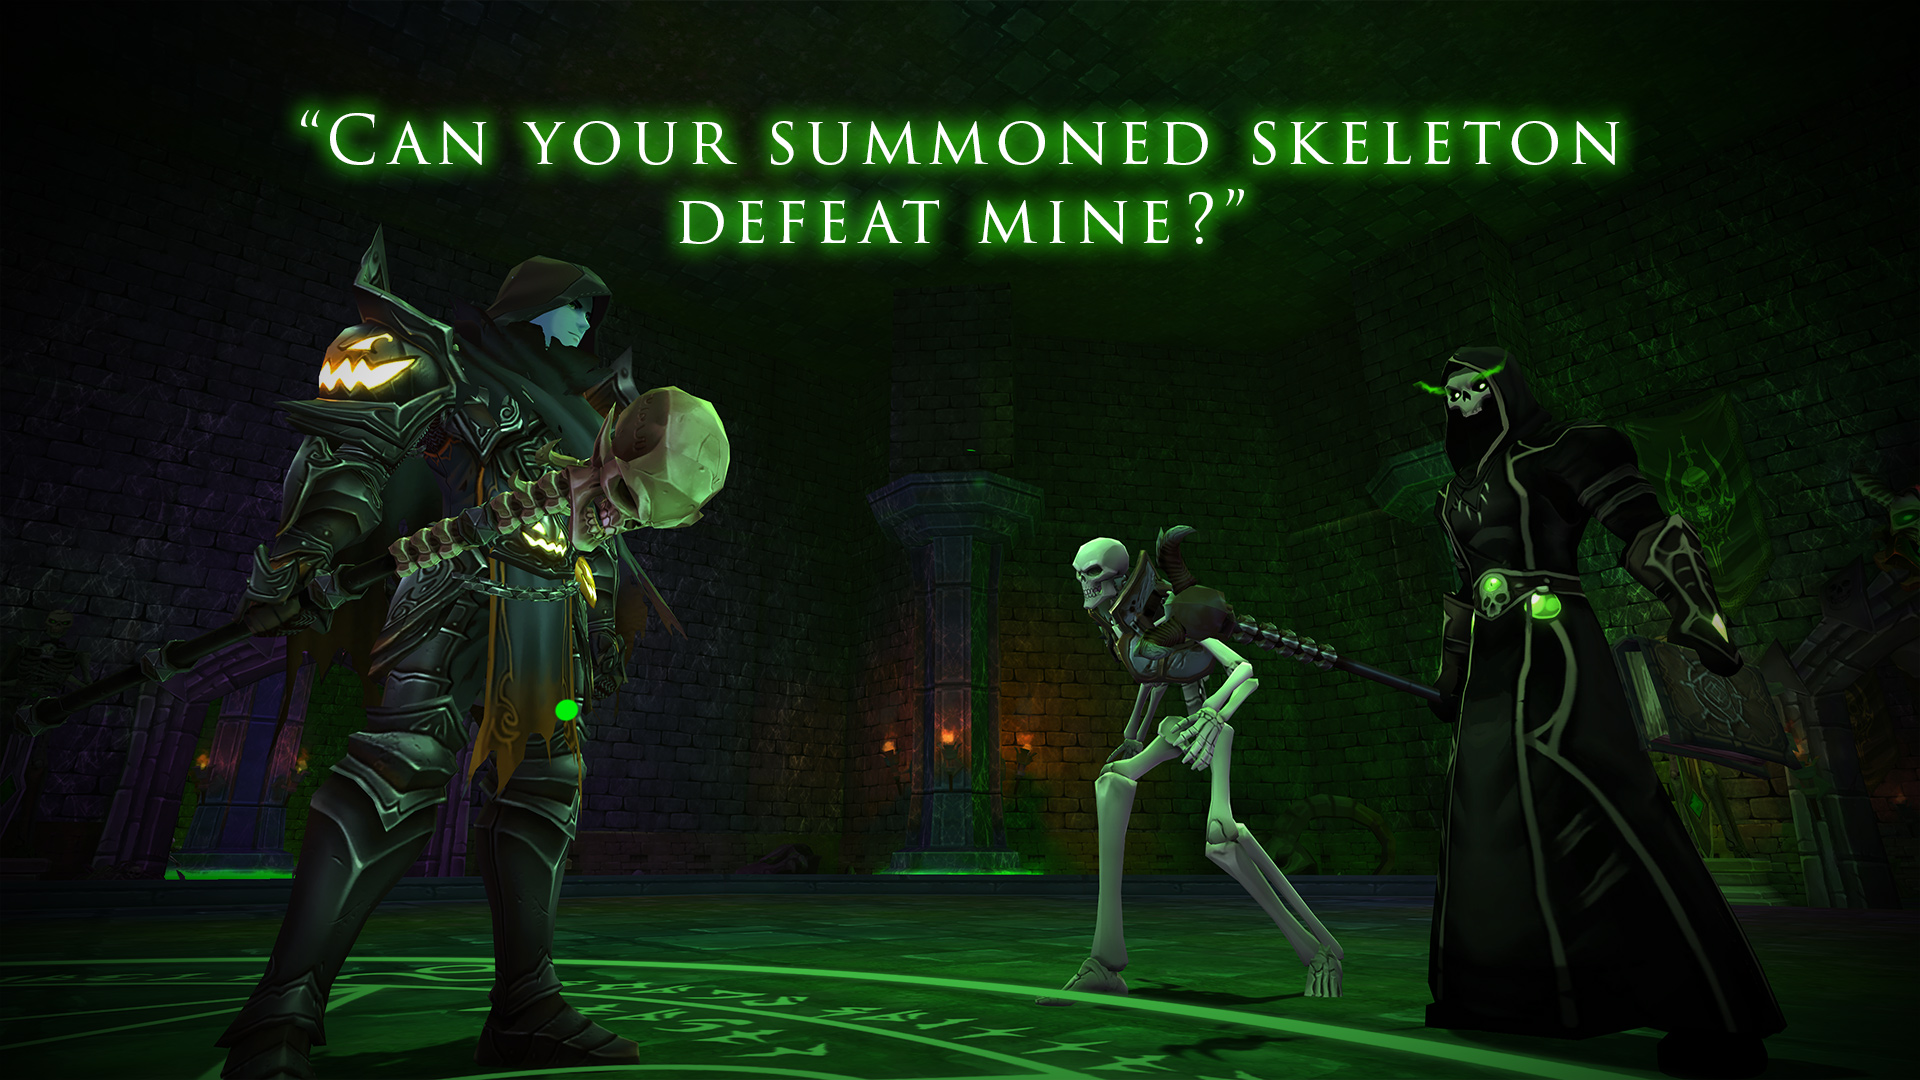 Summoning Skeletons